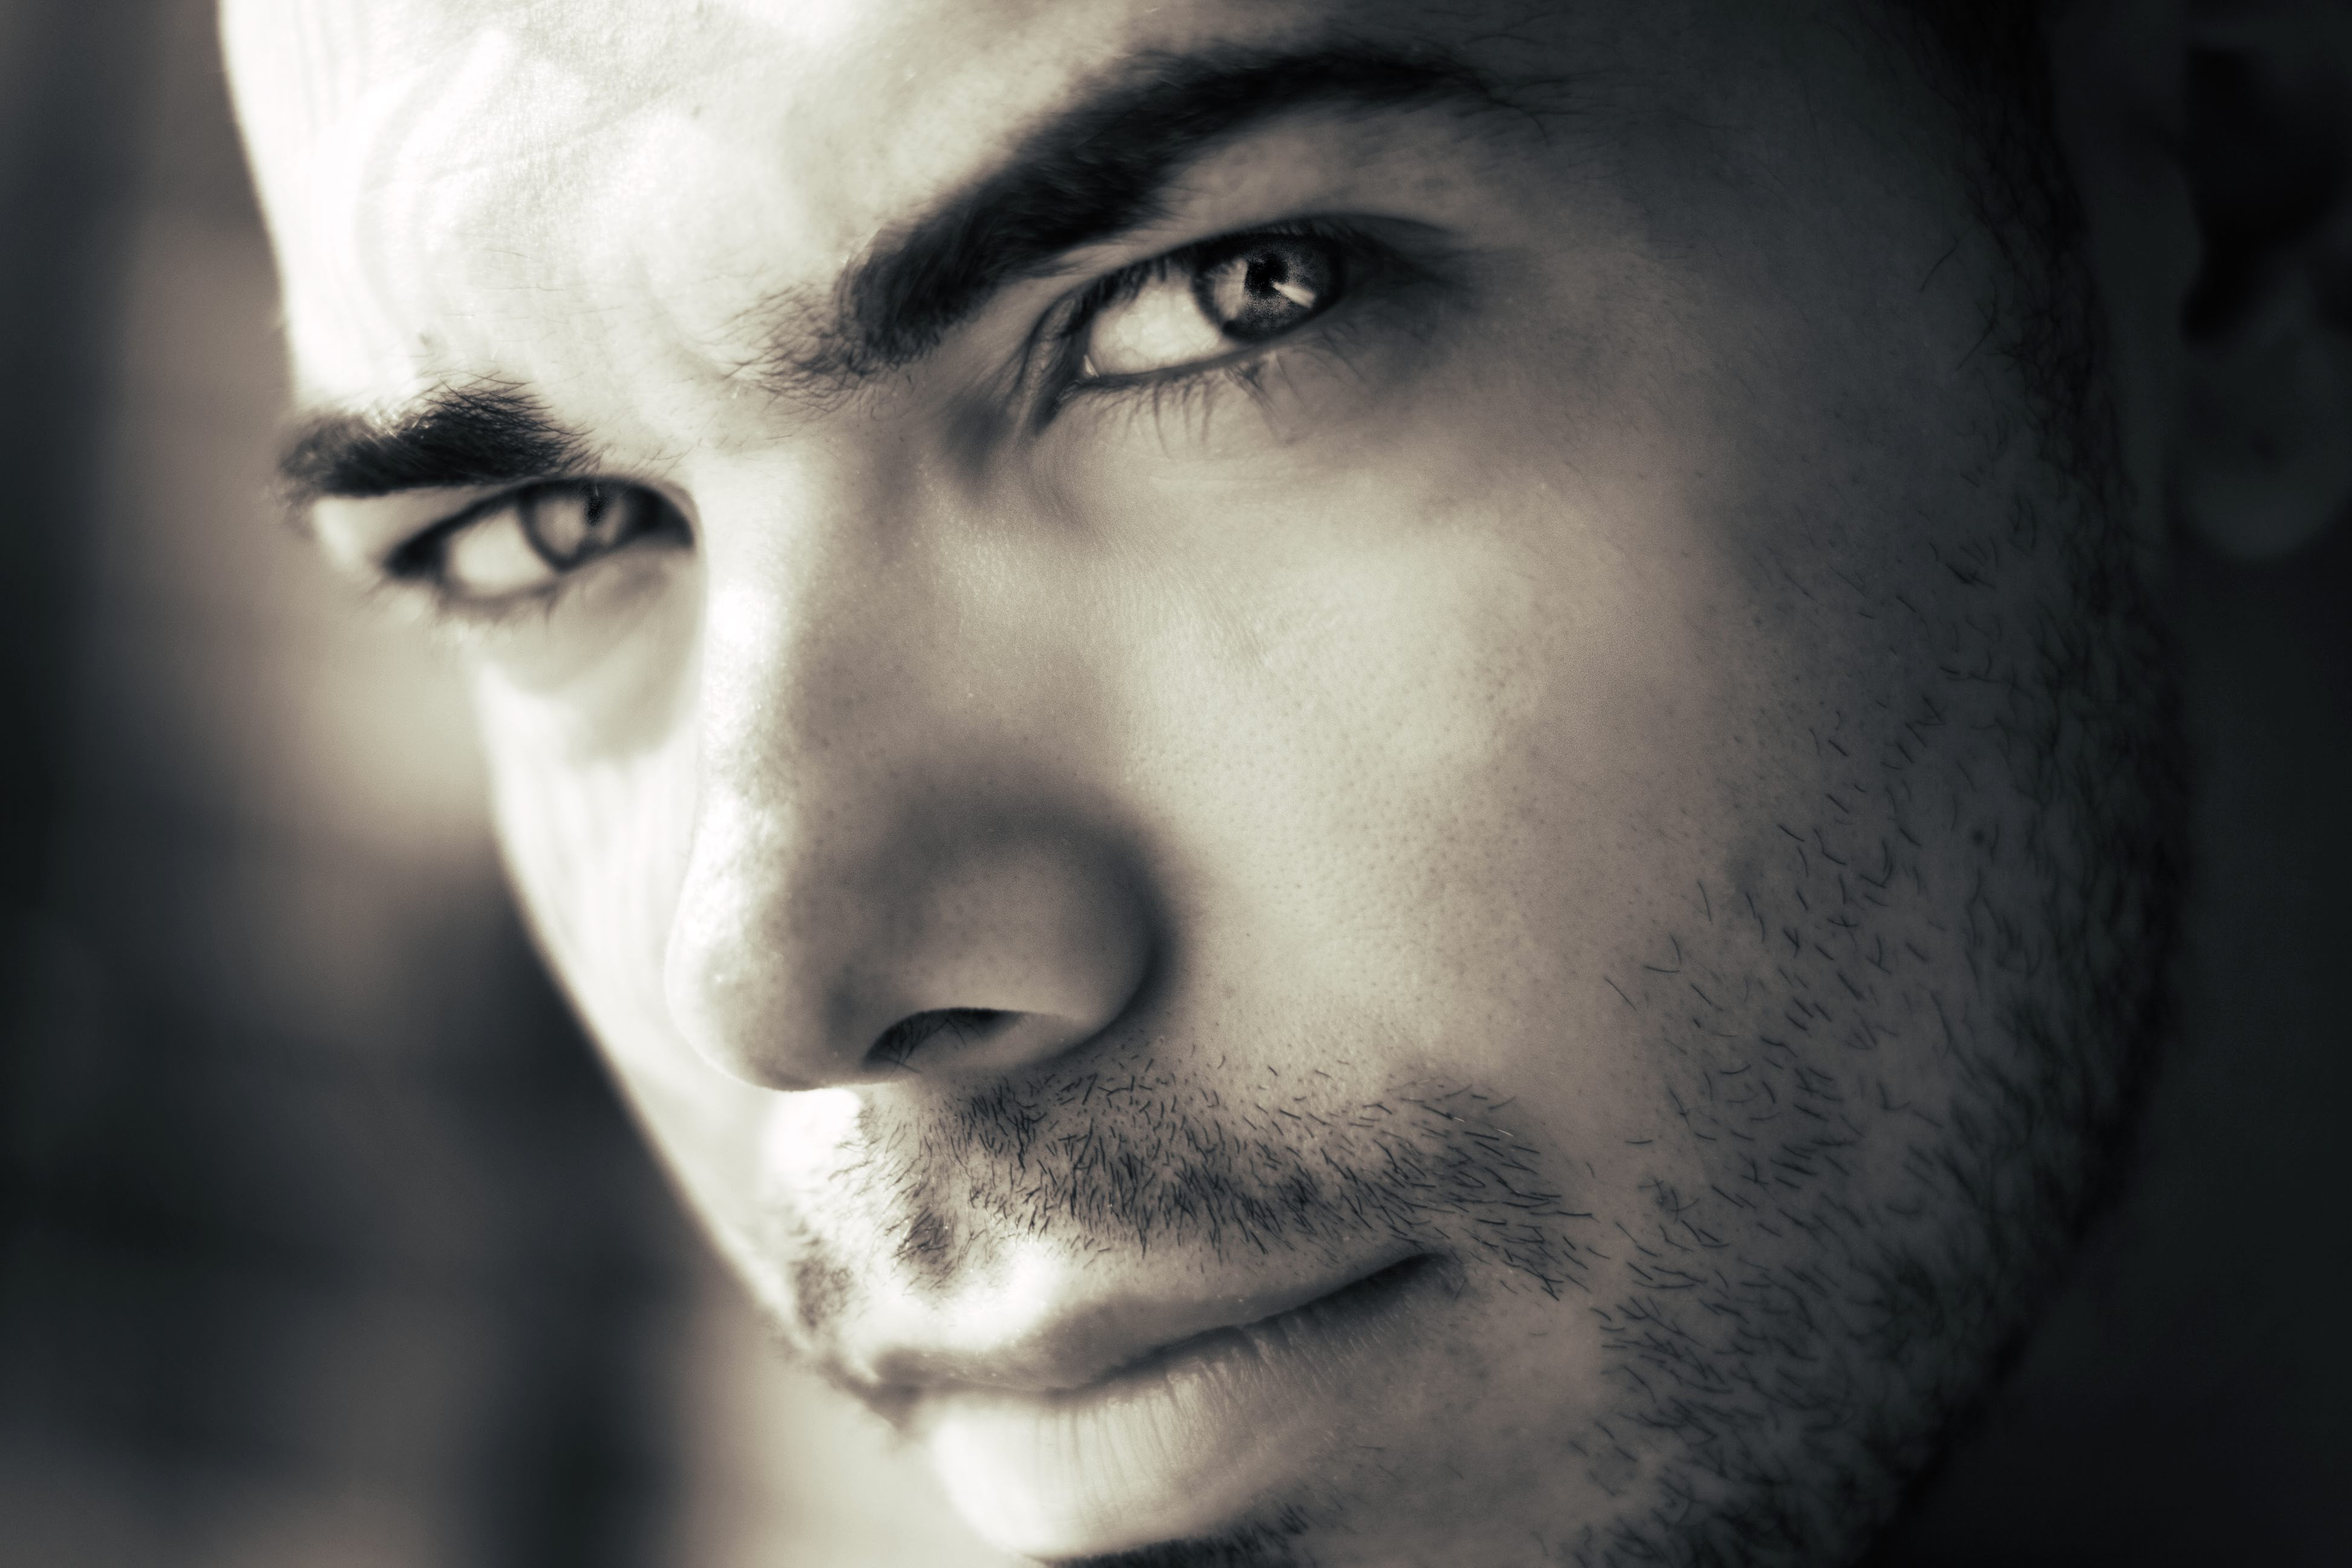 black and white man person eyes